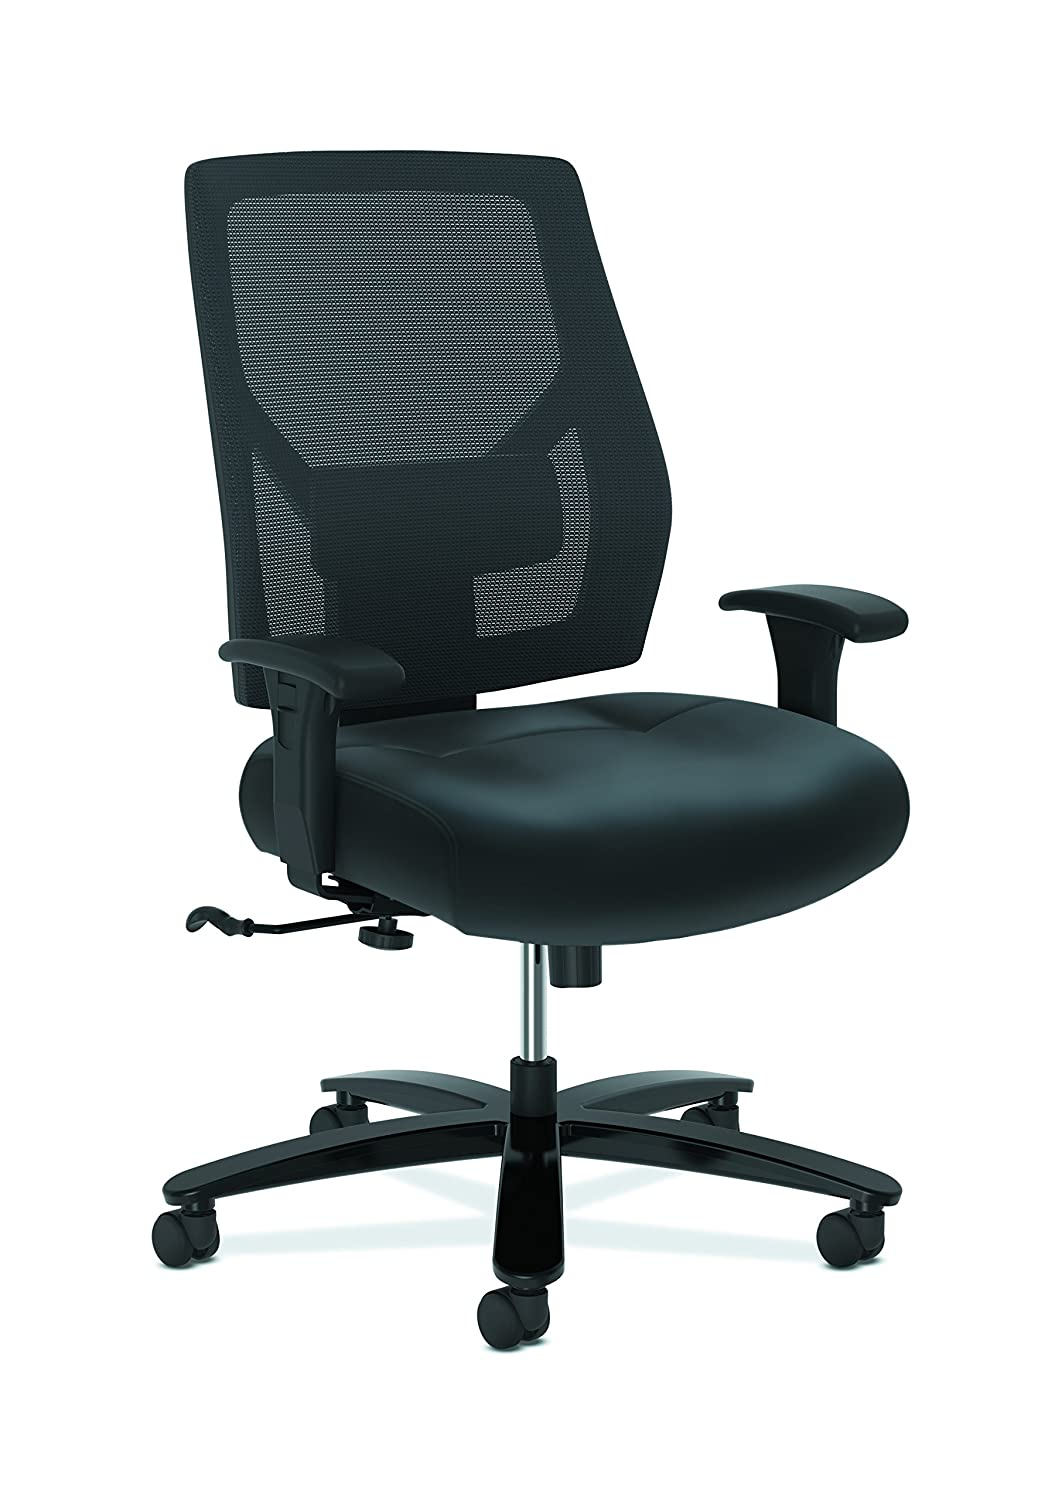 The HON Company HON Crio High Big and Tall Leather Mesh Back Computer Chair for Office Desk, Black (HVL581), Swivel/Tilt